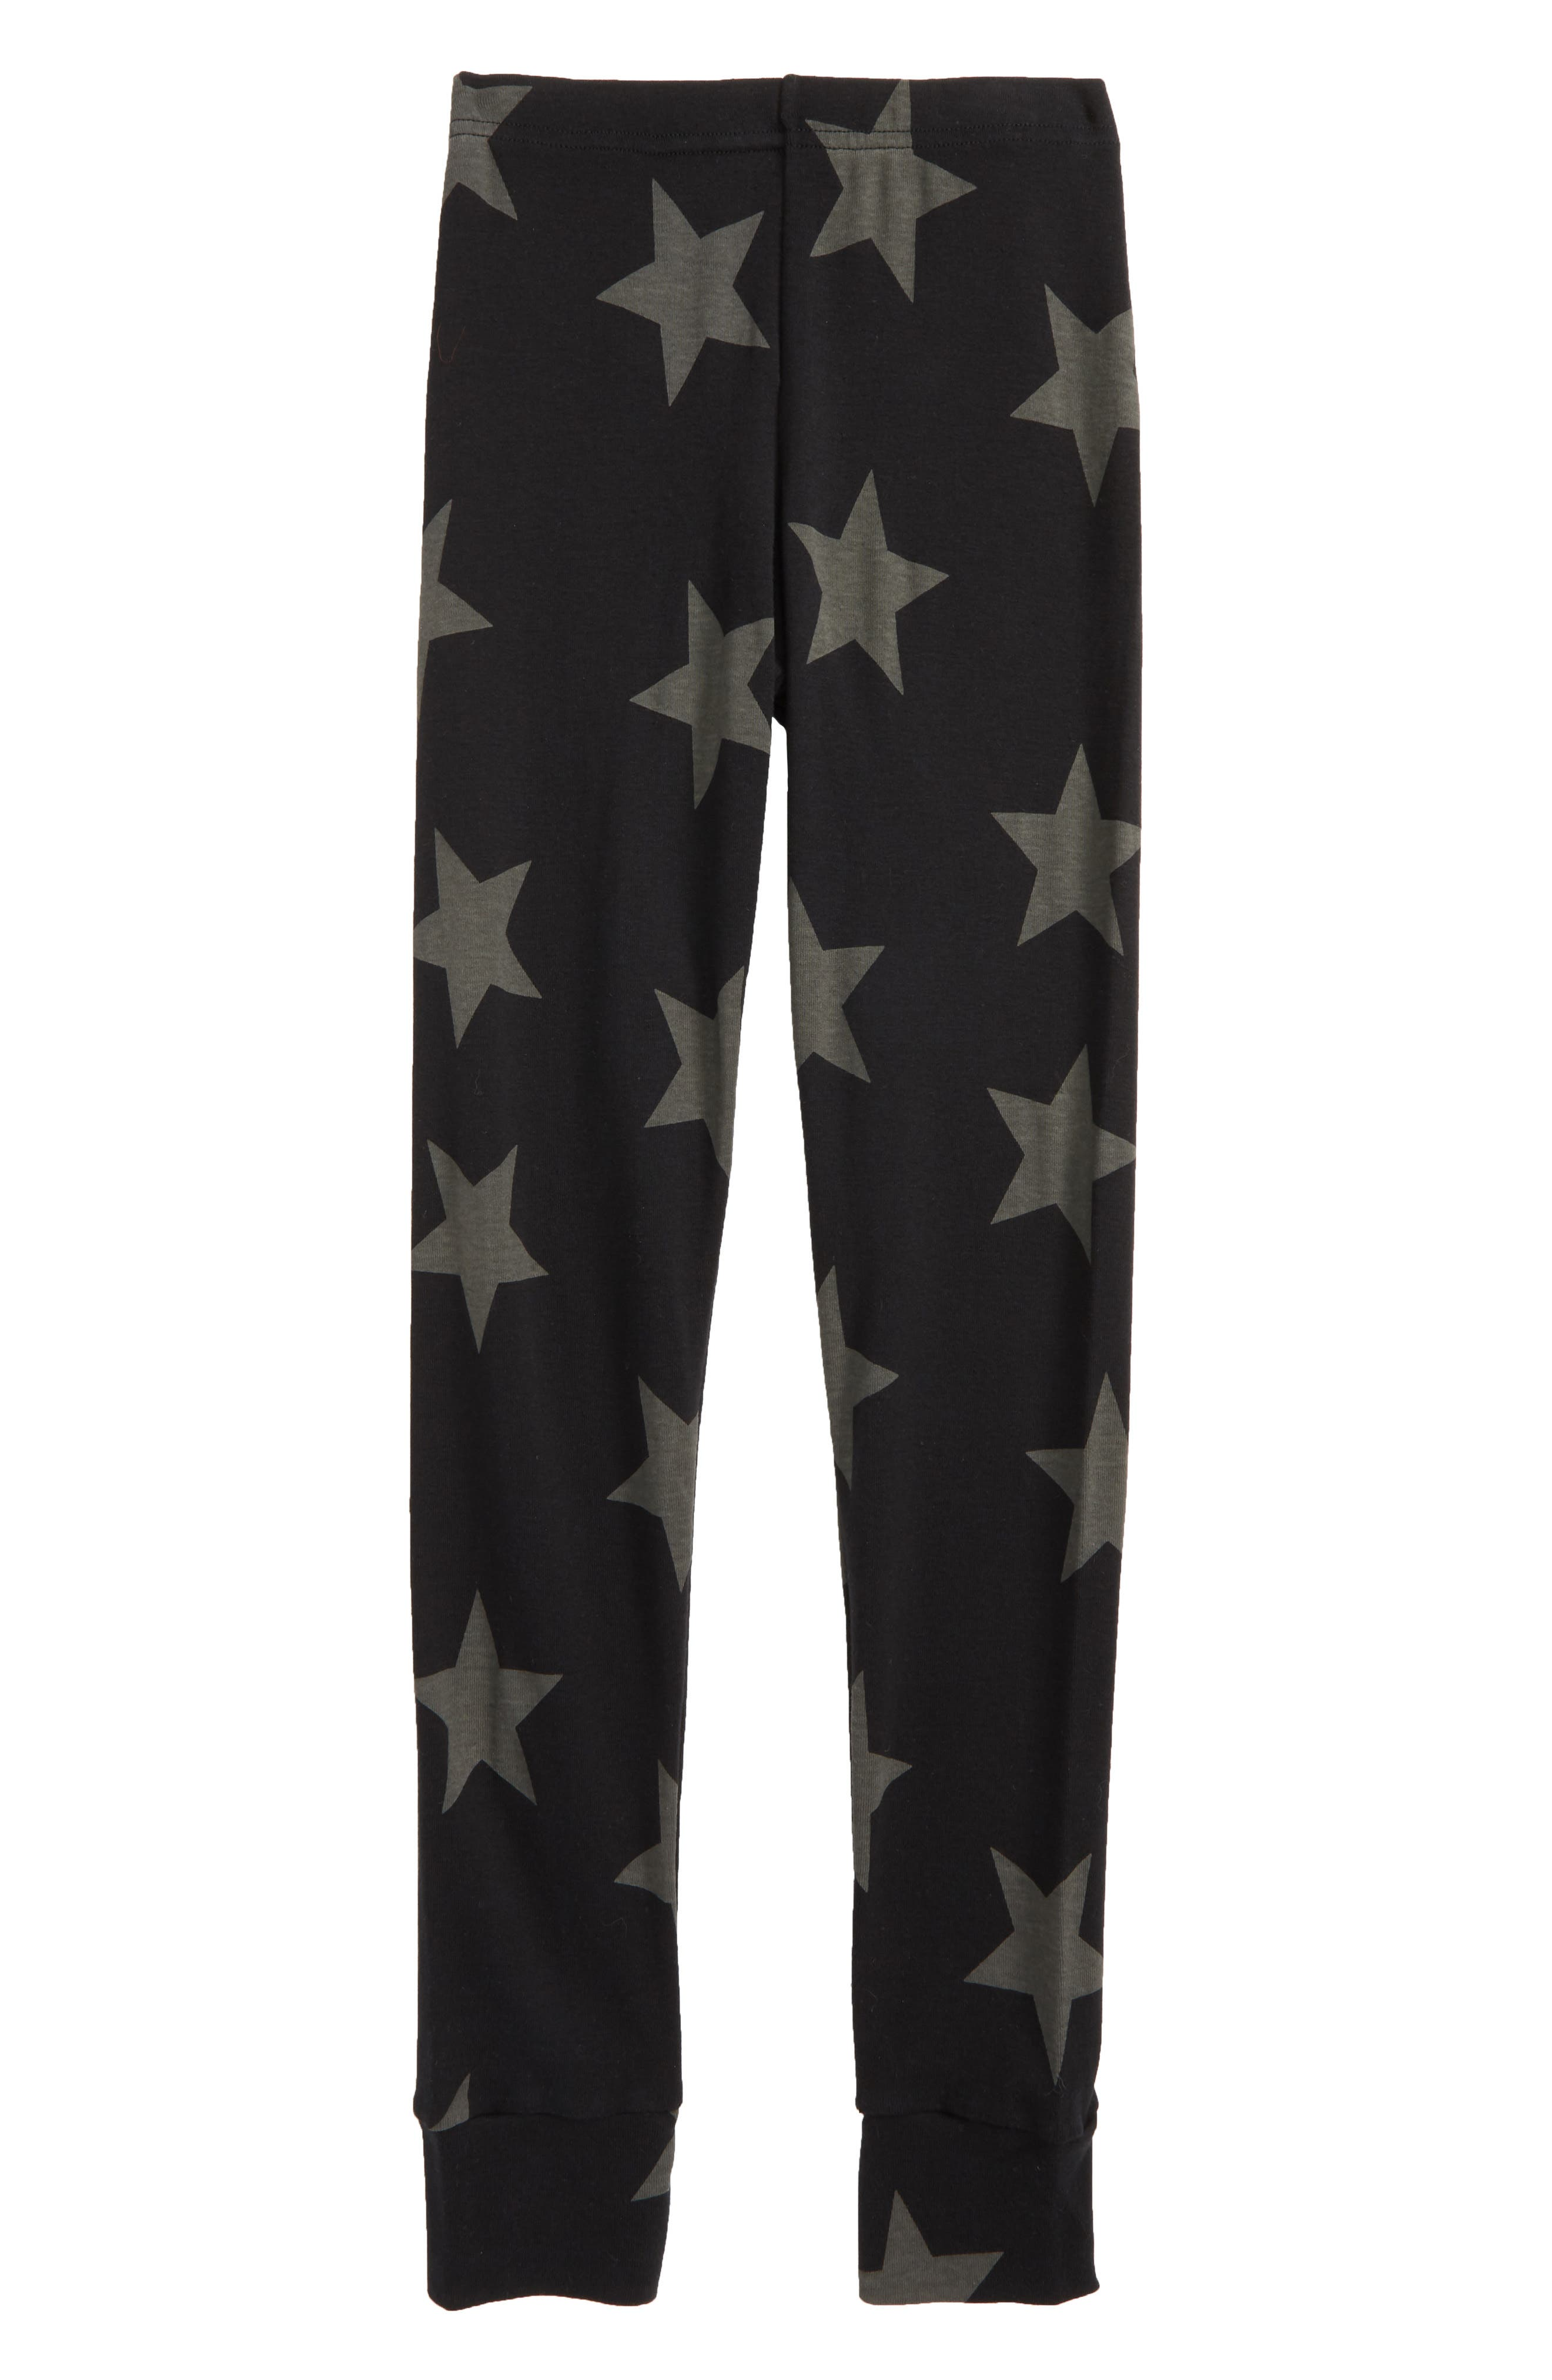 Star Print Leggings,                             Main thumbnail 1, color,                             Black